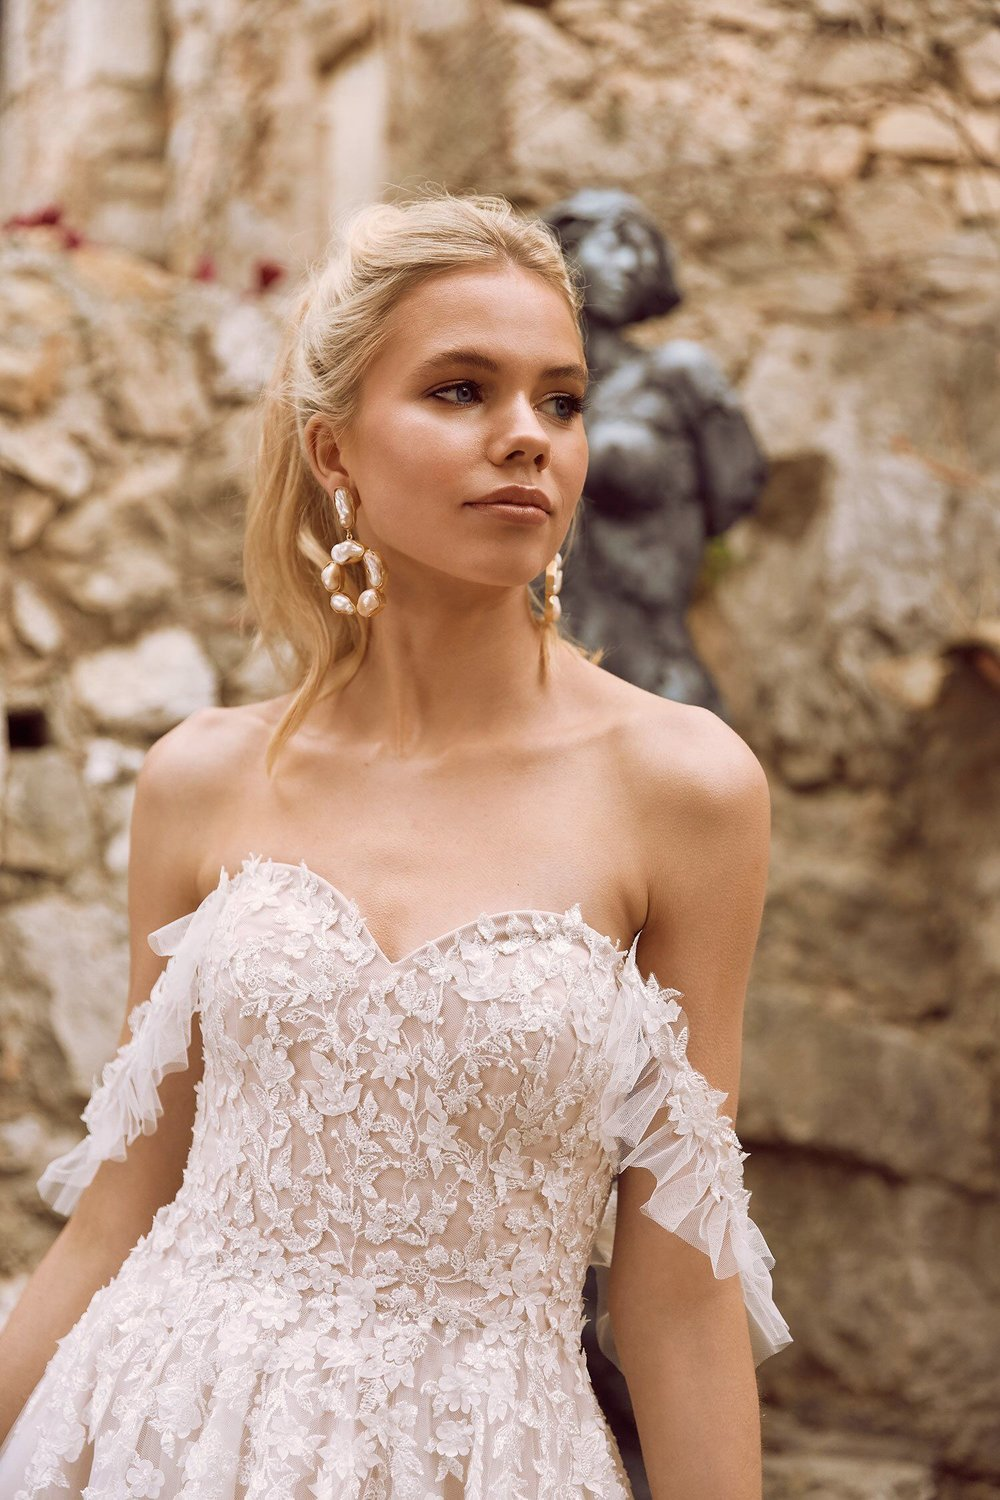 The Riviera Collection by Madi Lane Bridal featured on LOVE FIND CO.